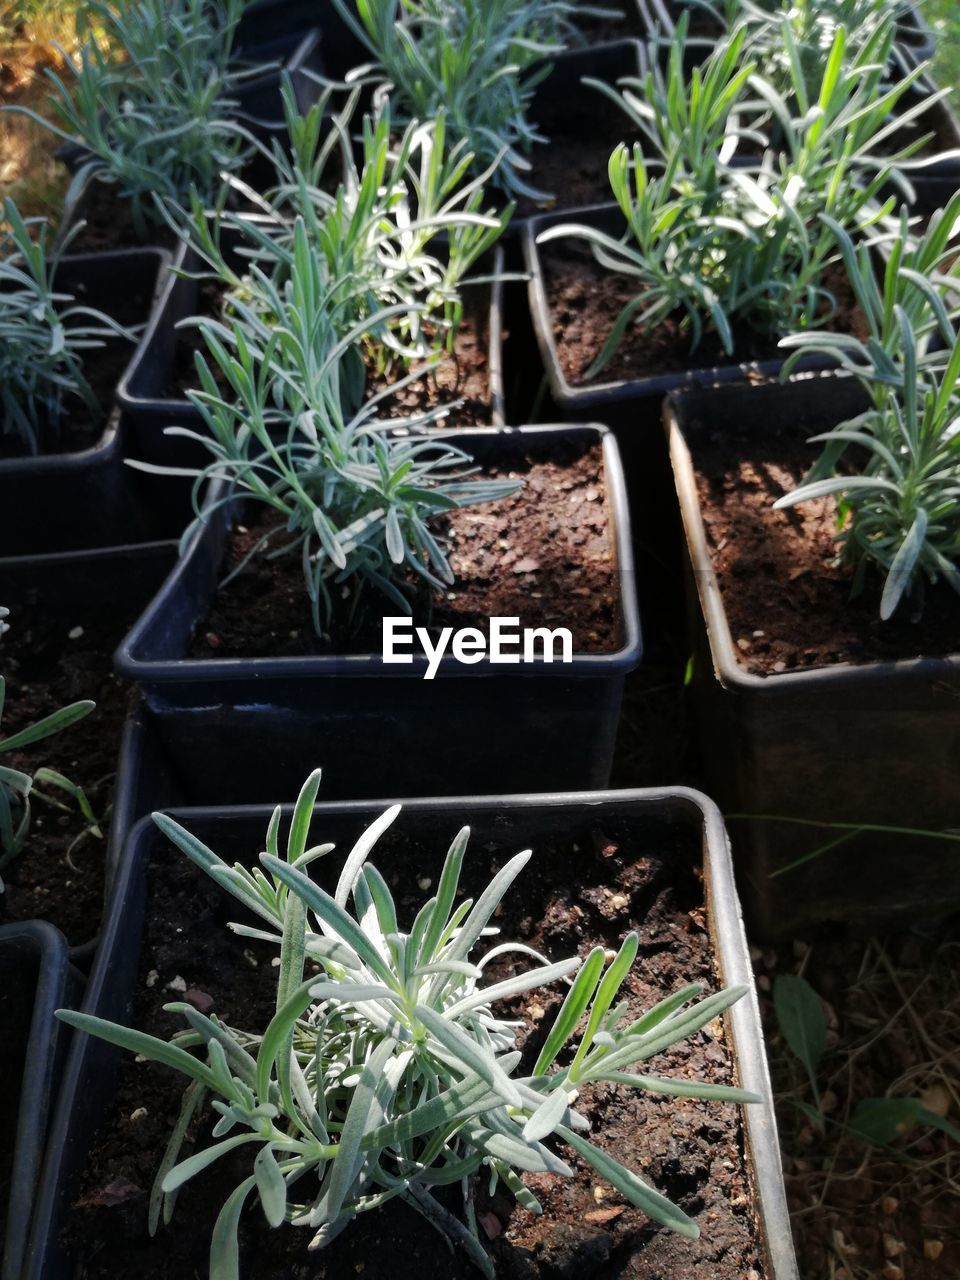 growth, plant, planting, potted plant, seedling, leaf, nature, gardening, new life, green color, agriculture, sapling, outdoors, day, freshness, plant nursery, beauty in nature, close-up, greenhouse, no people